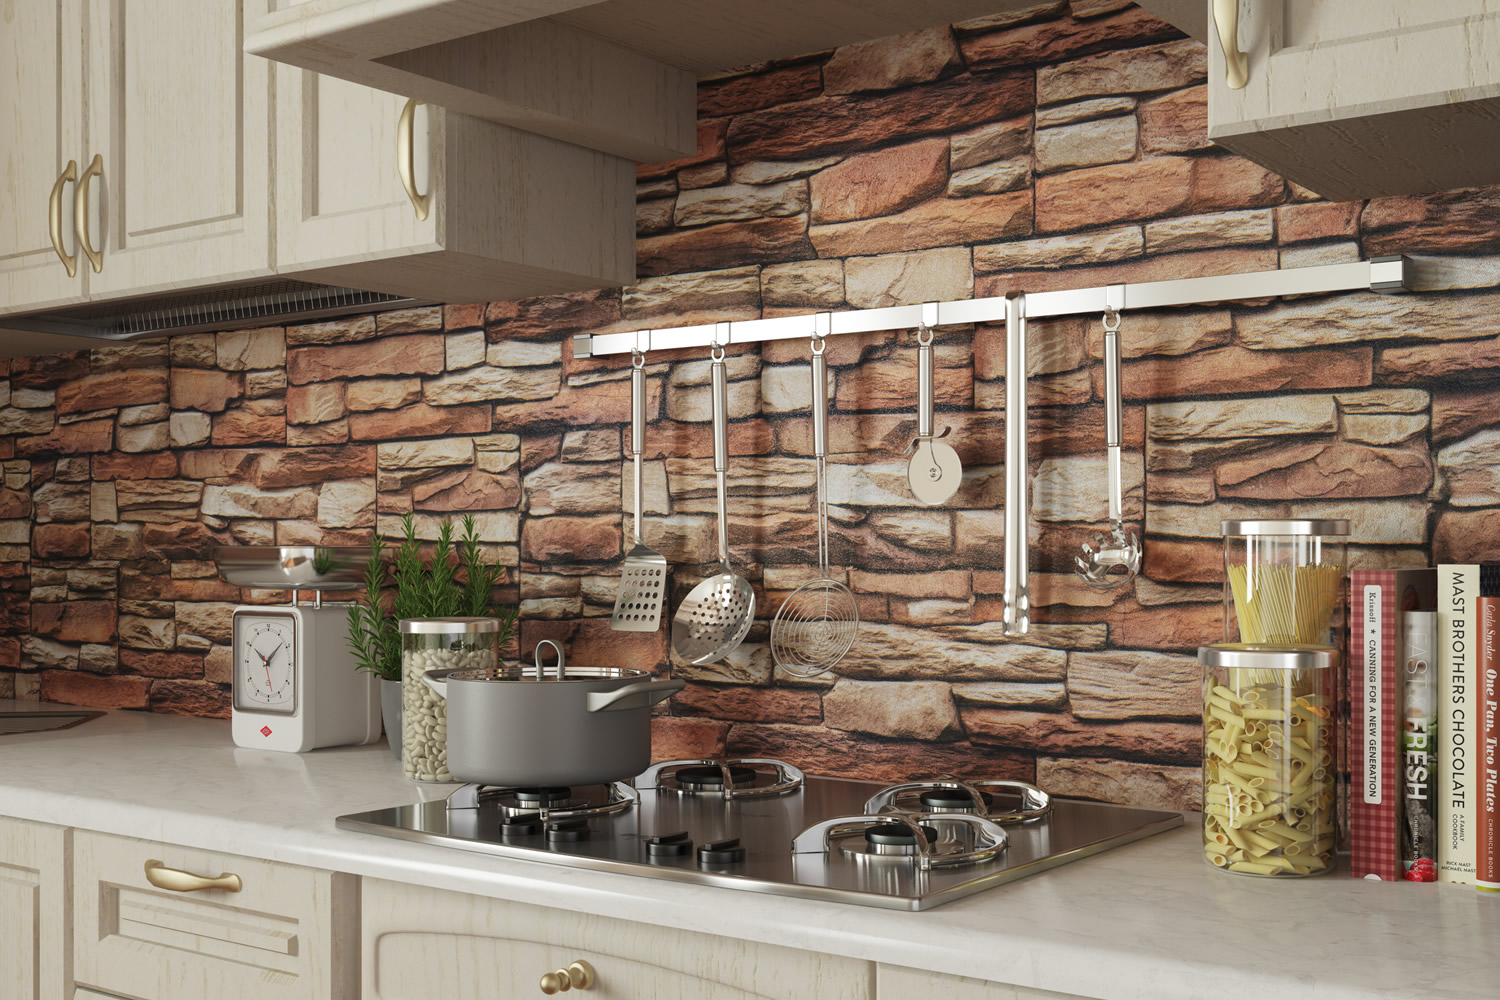 Stunning Cucina Con Parete In Pietra Gallery - Skilifts.us ...